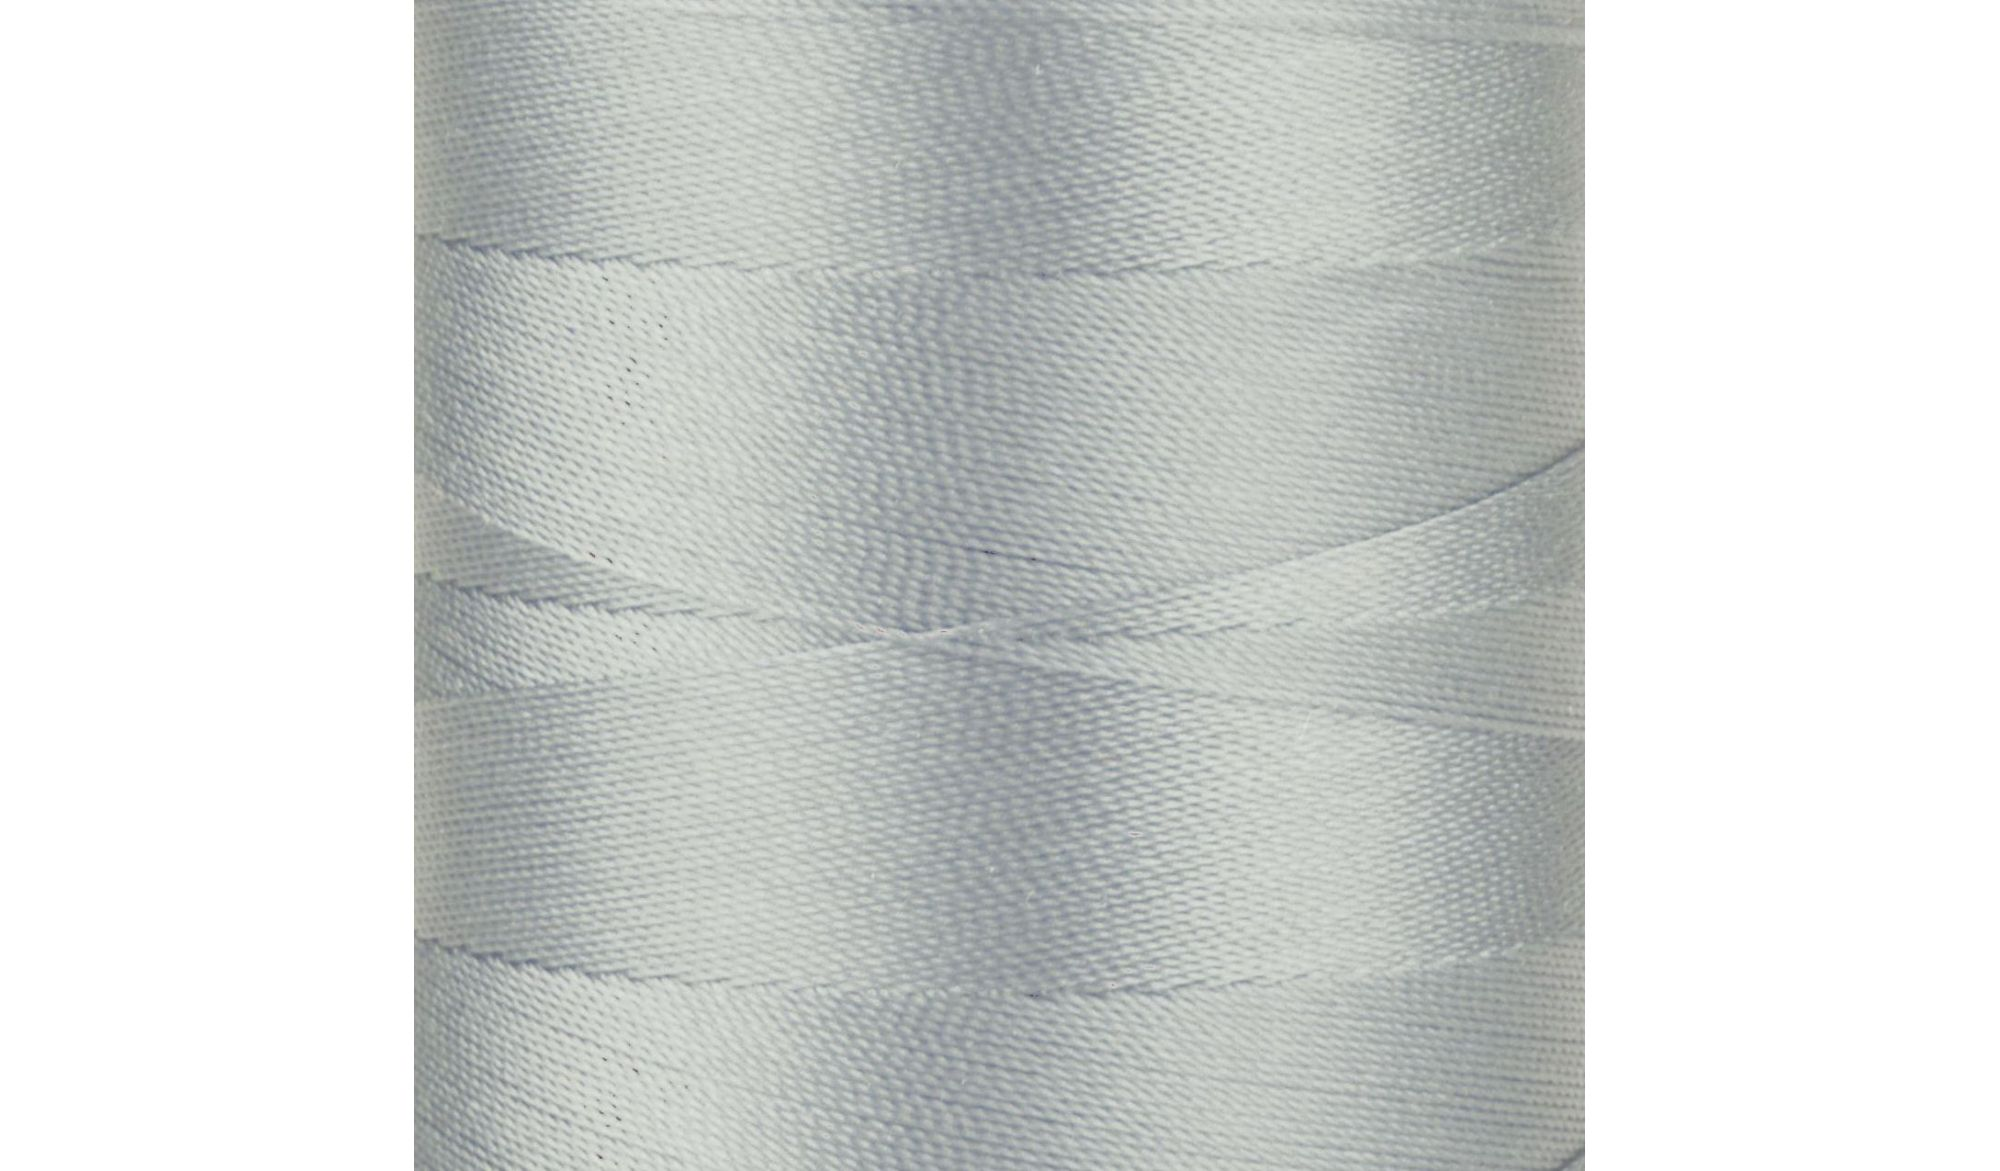 NICI 1000 10 ATOS 145 - Threads alt_nici_kolor_145 Replaces sewing Decorative quilting - Colour